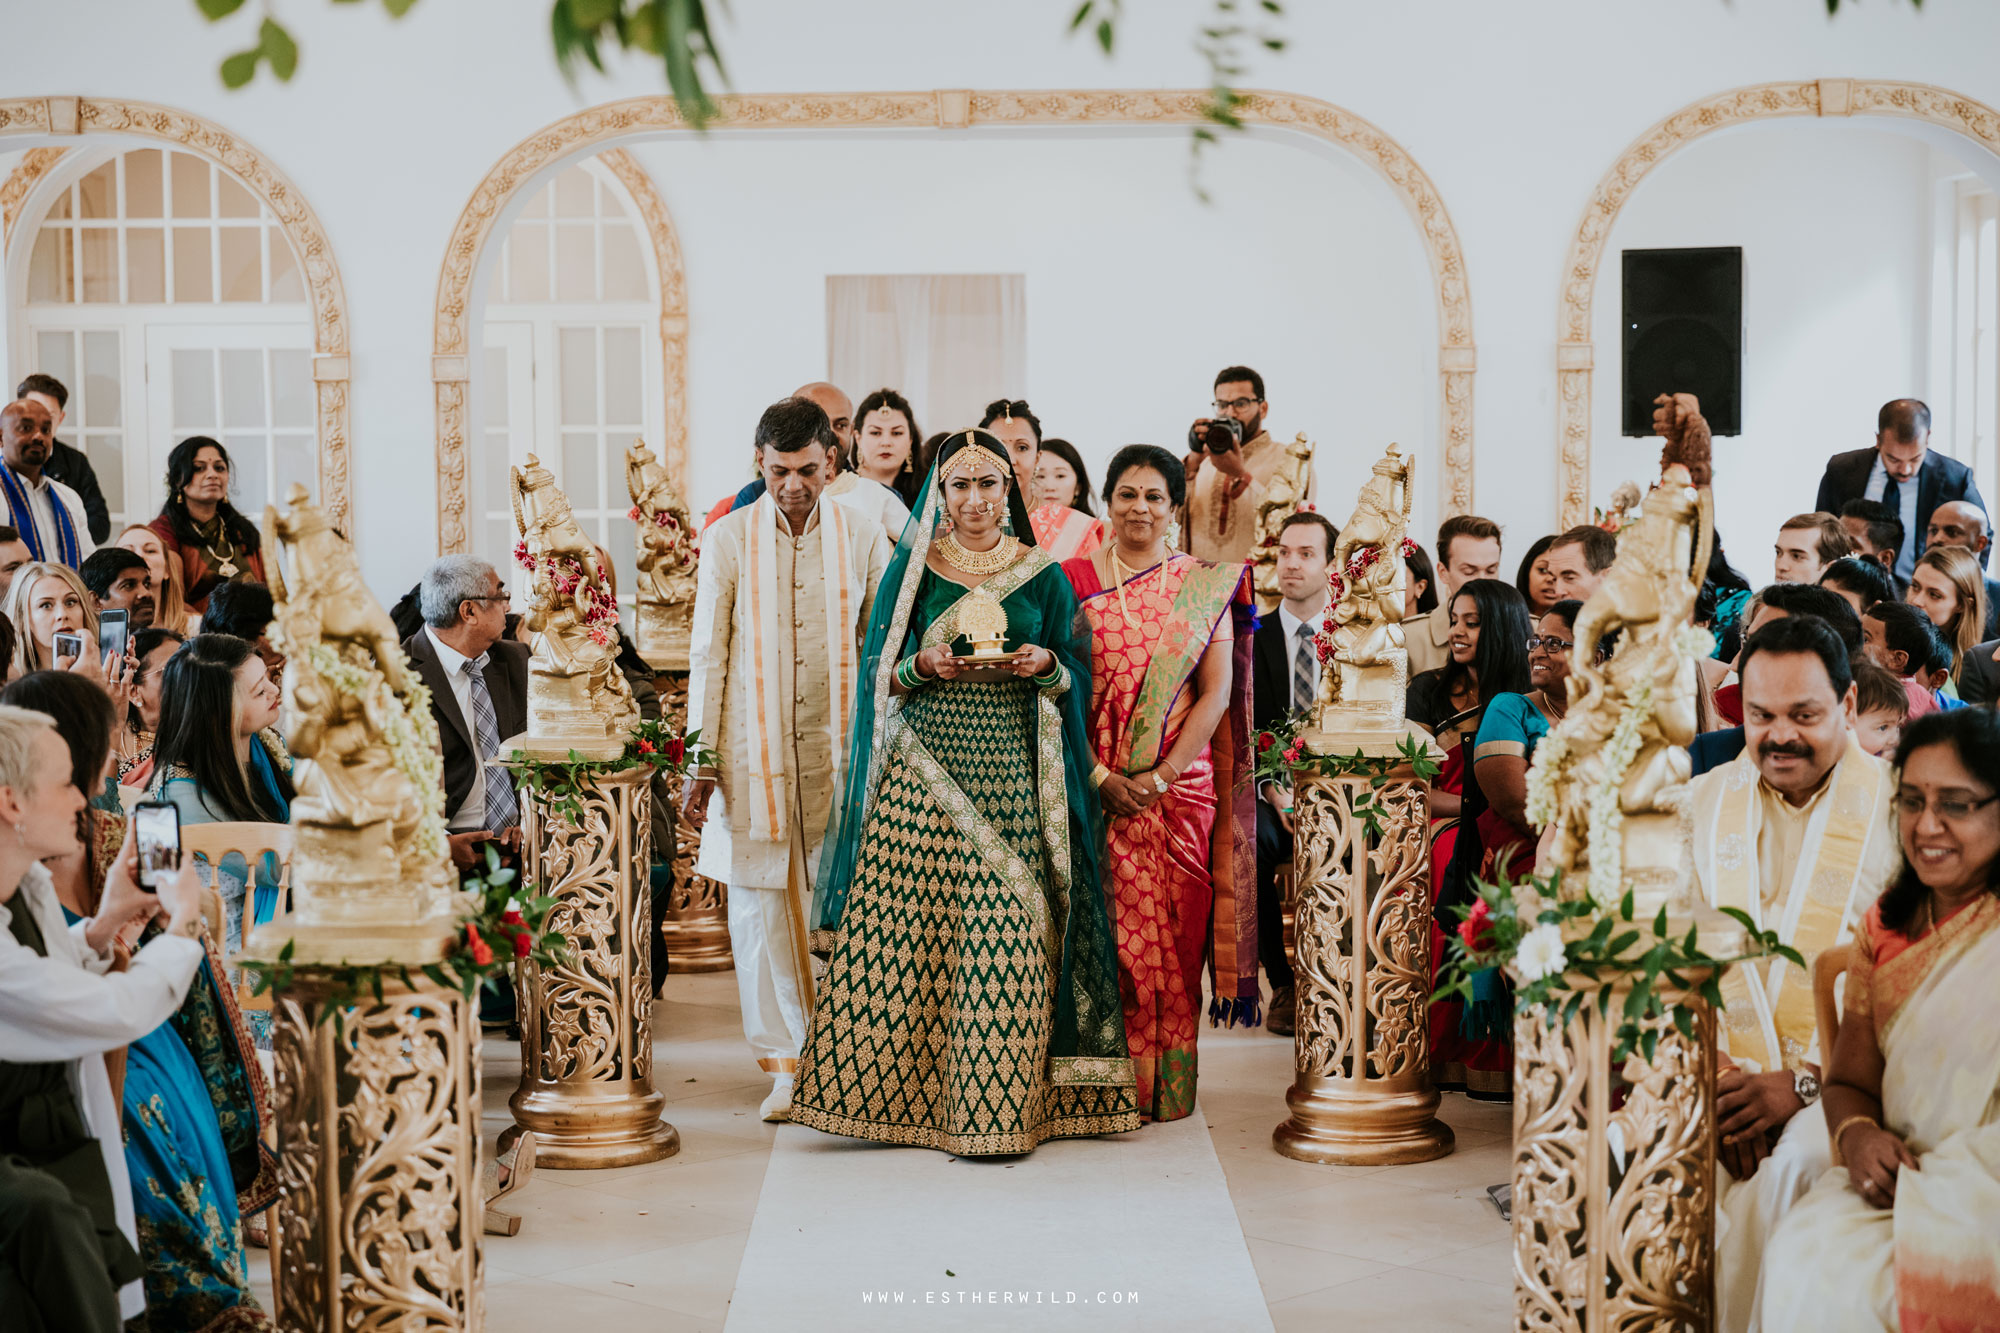 Northbrook_Park_Farnham_Surrey_London_Wedding_Hindu_Fusion_Esther_Wild_Photographer_IMG_3819.jpg